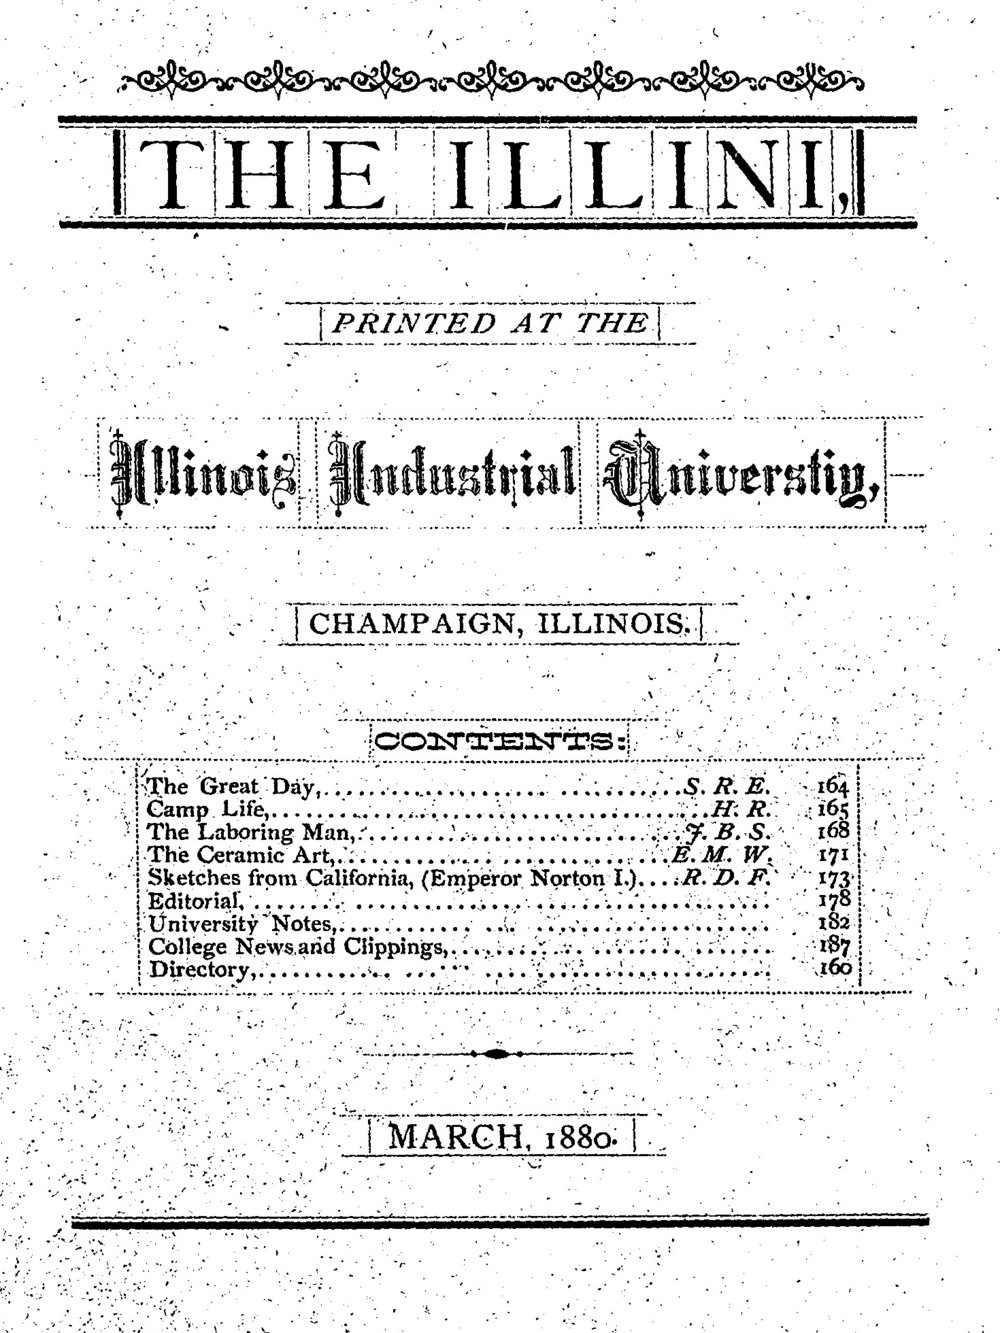 Cover page of  The Illini , volume 9, number 6, March 1880.  Source:  Illinois Digital Newspaper Collections .